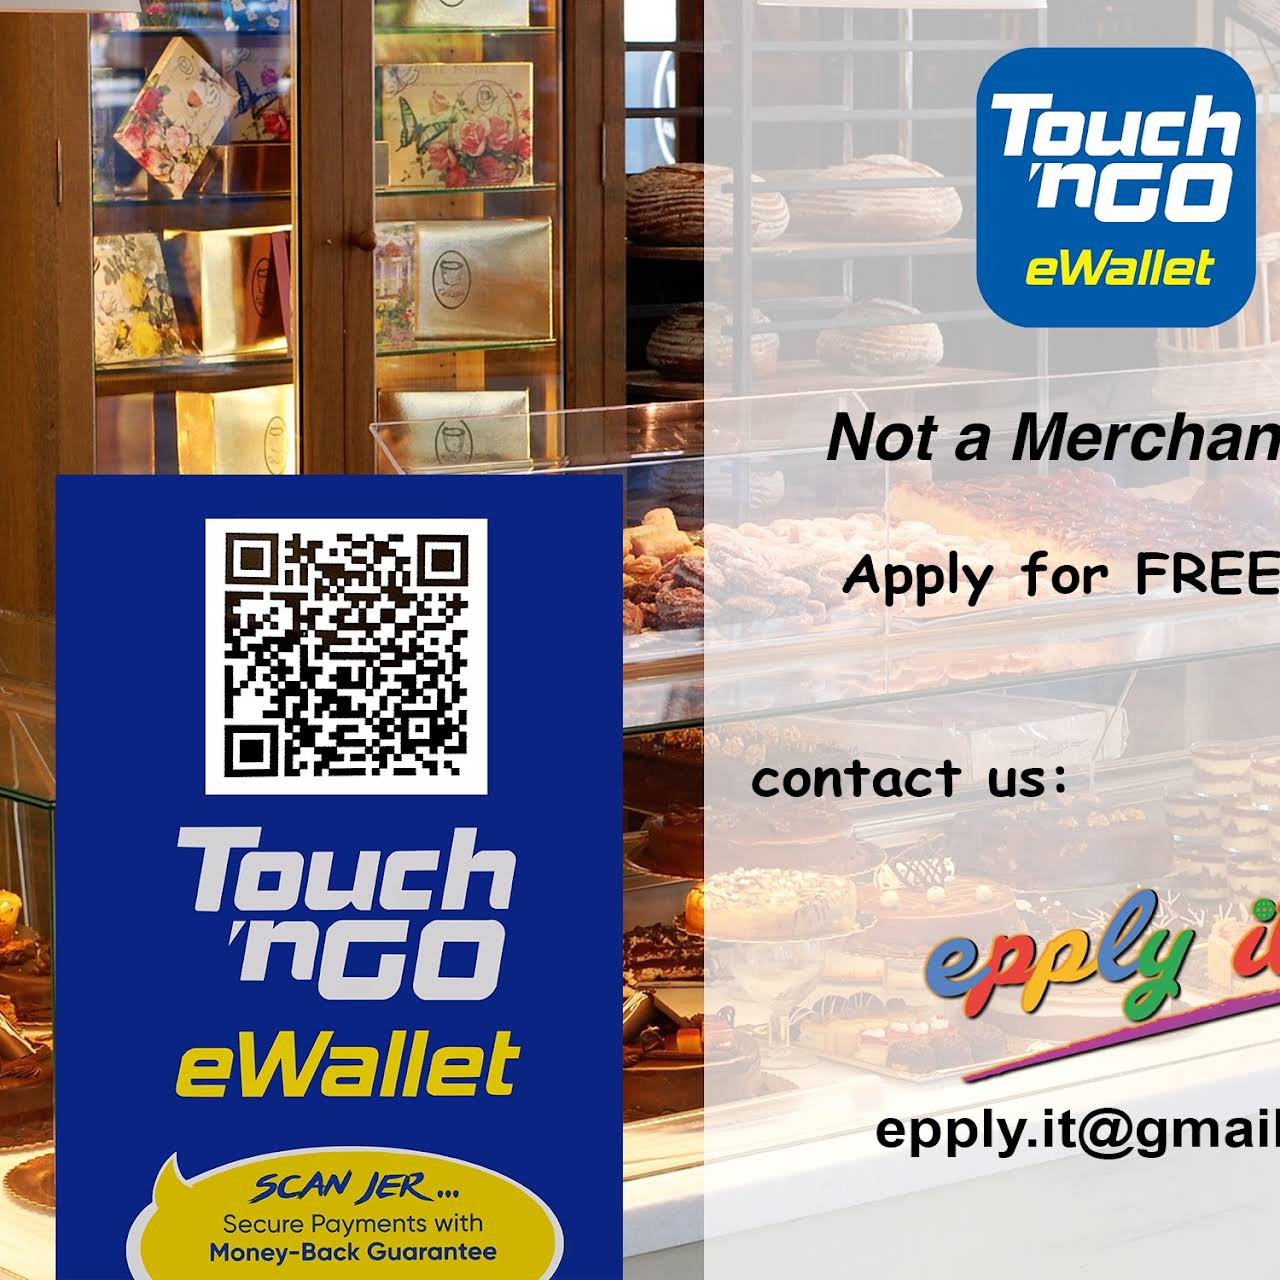 Ewallet Touch N Go Boost Epply It Commercial Agent In Desa Parkcity